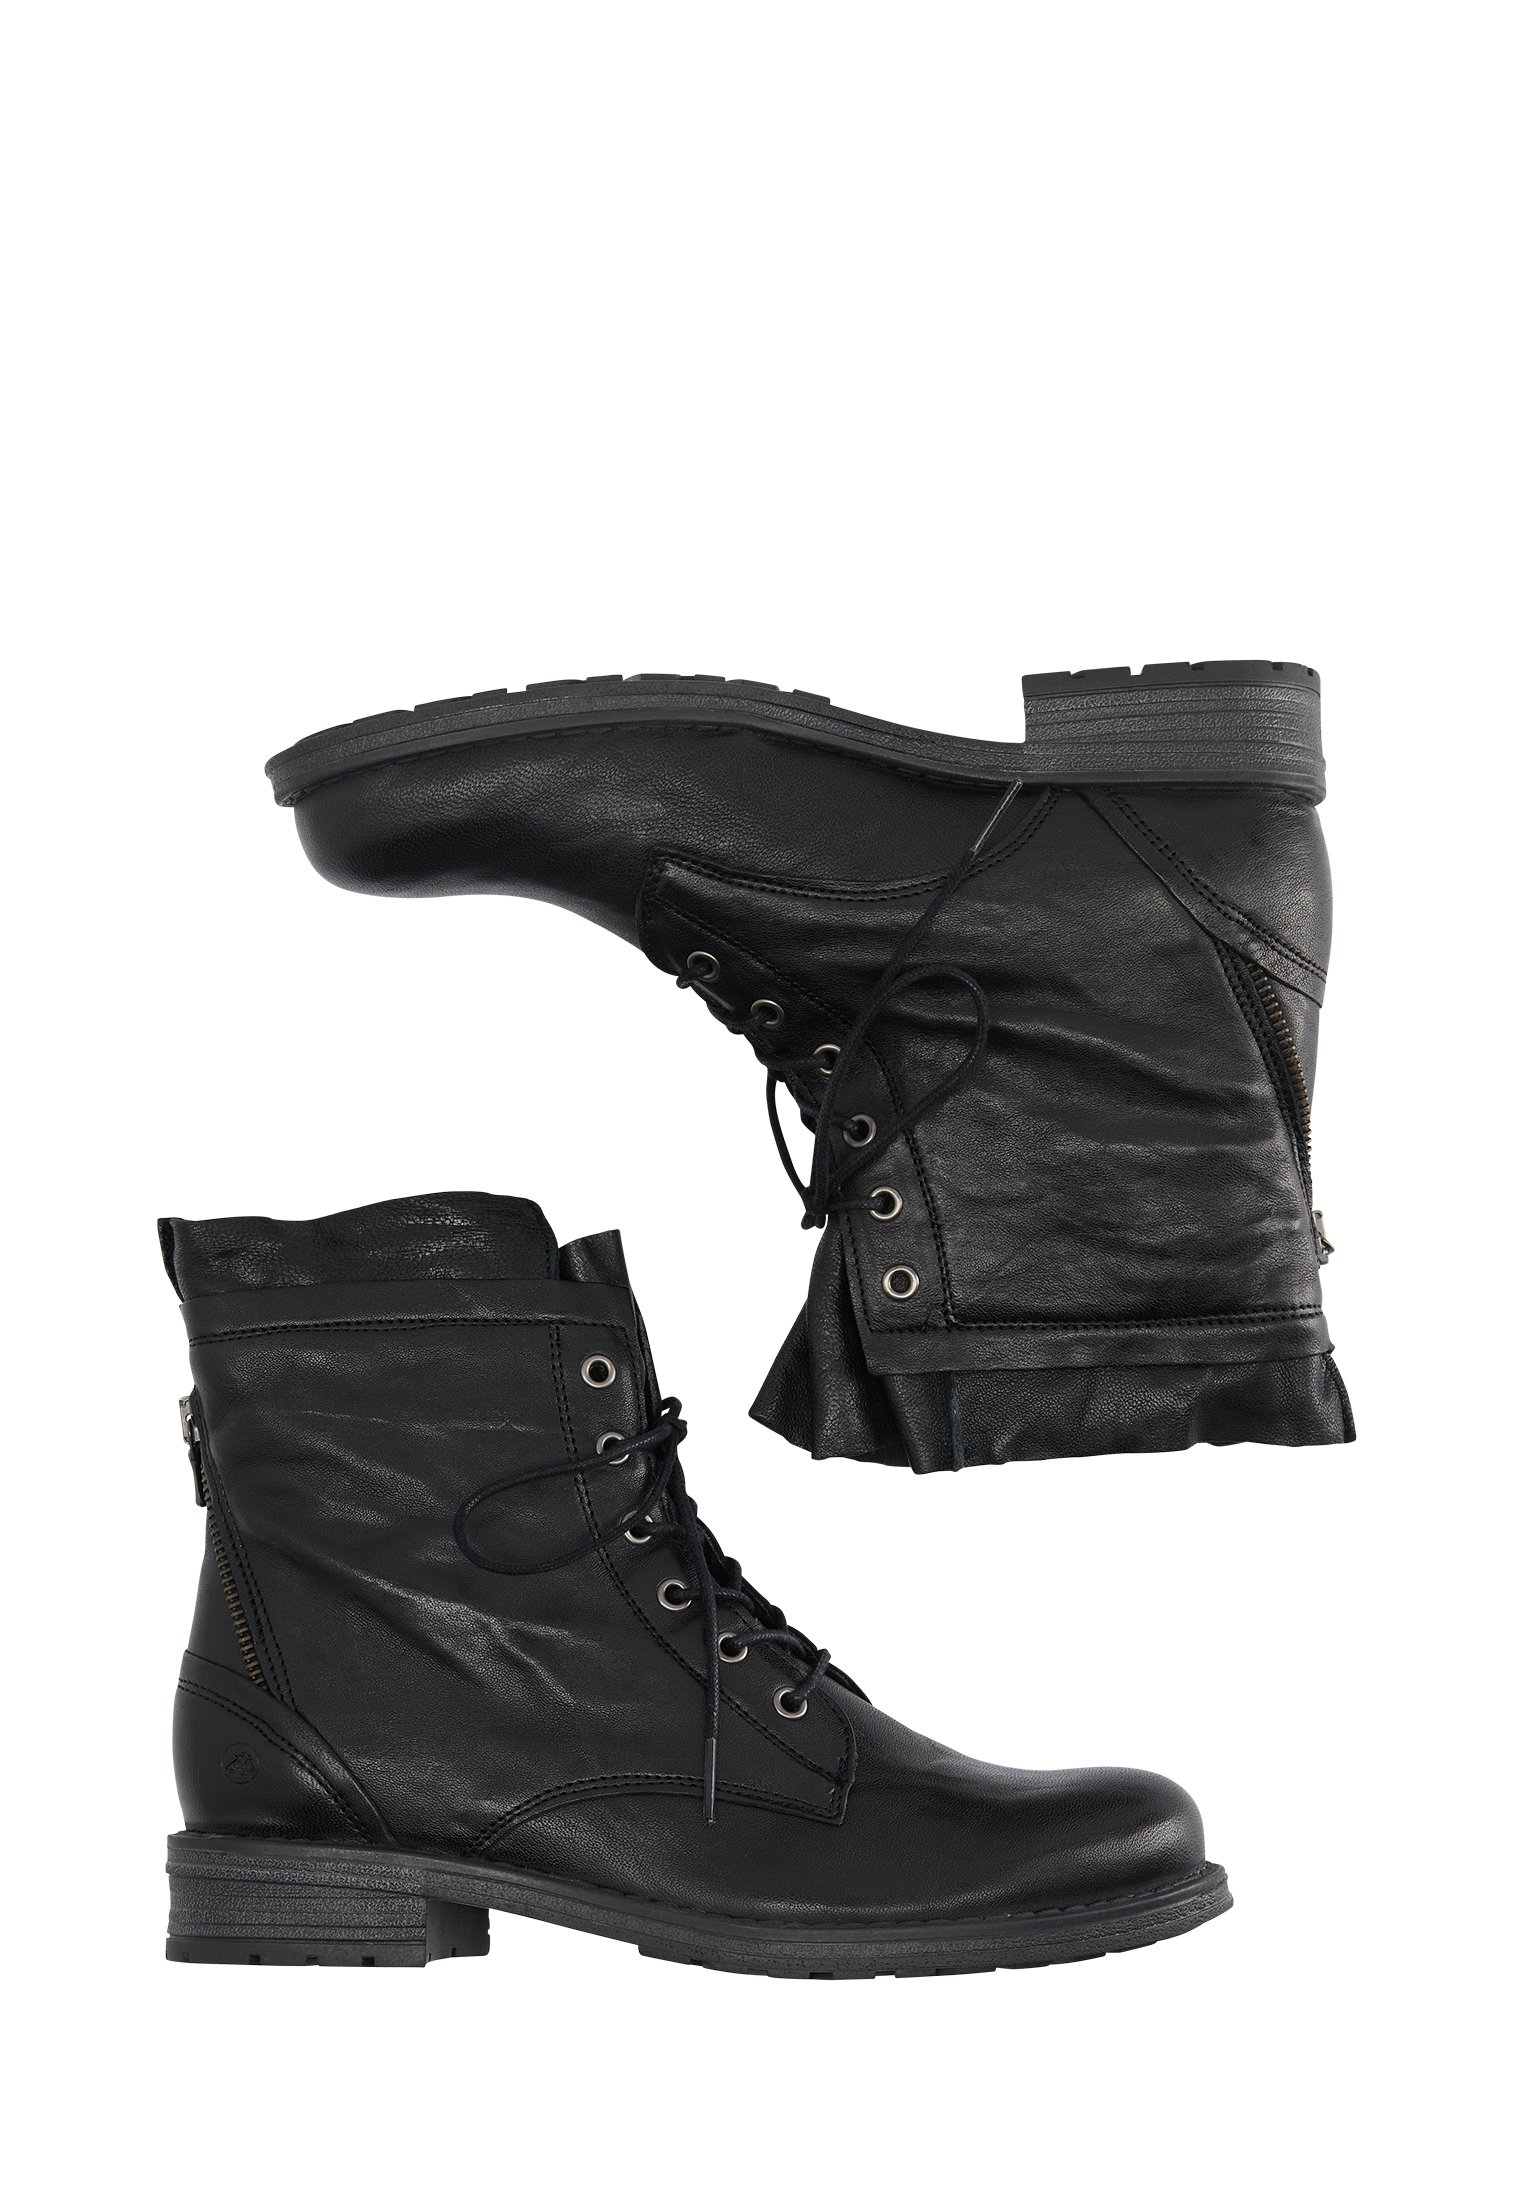 2013 Cheapest DreiMaster Lace-up ankle boots - schwarz | women's shoes 2020 D6Nbe